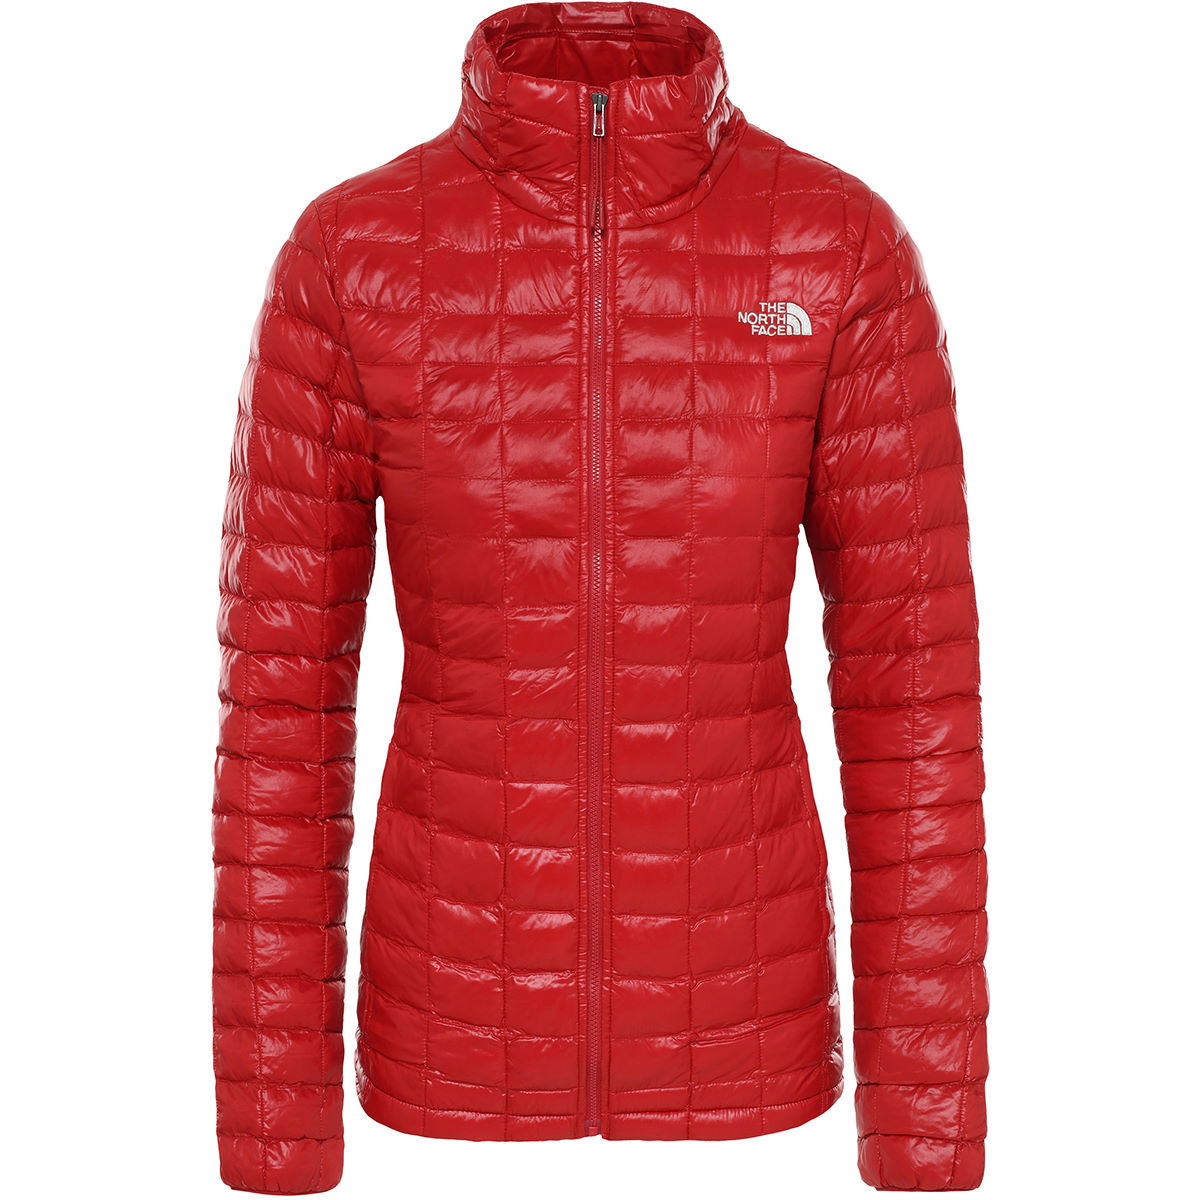 The North Face The North Face Women's ThermoBall™ Eco Jacket   Jackets